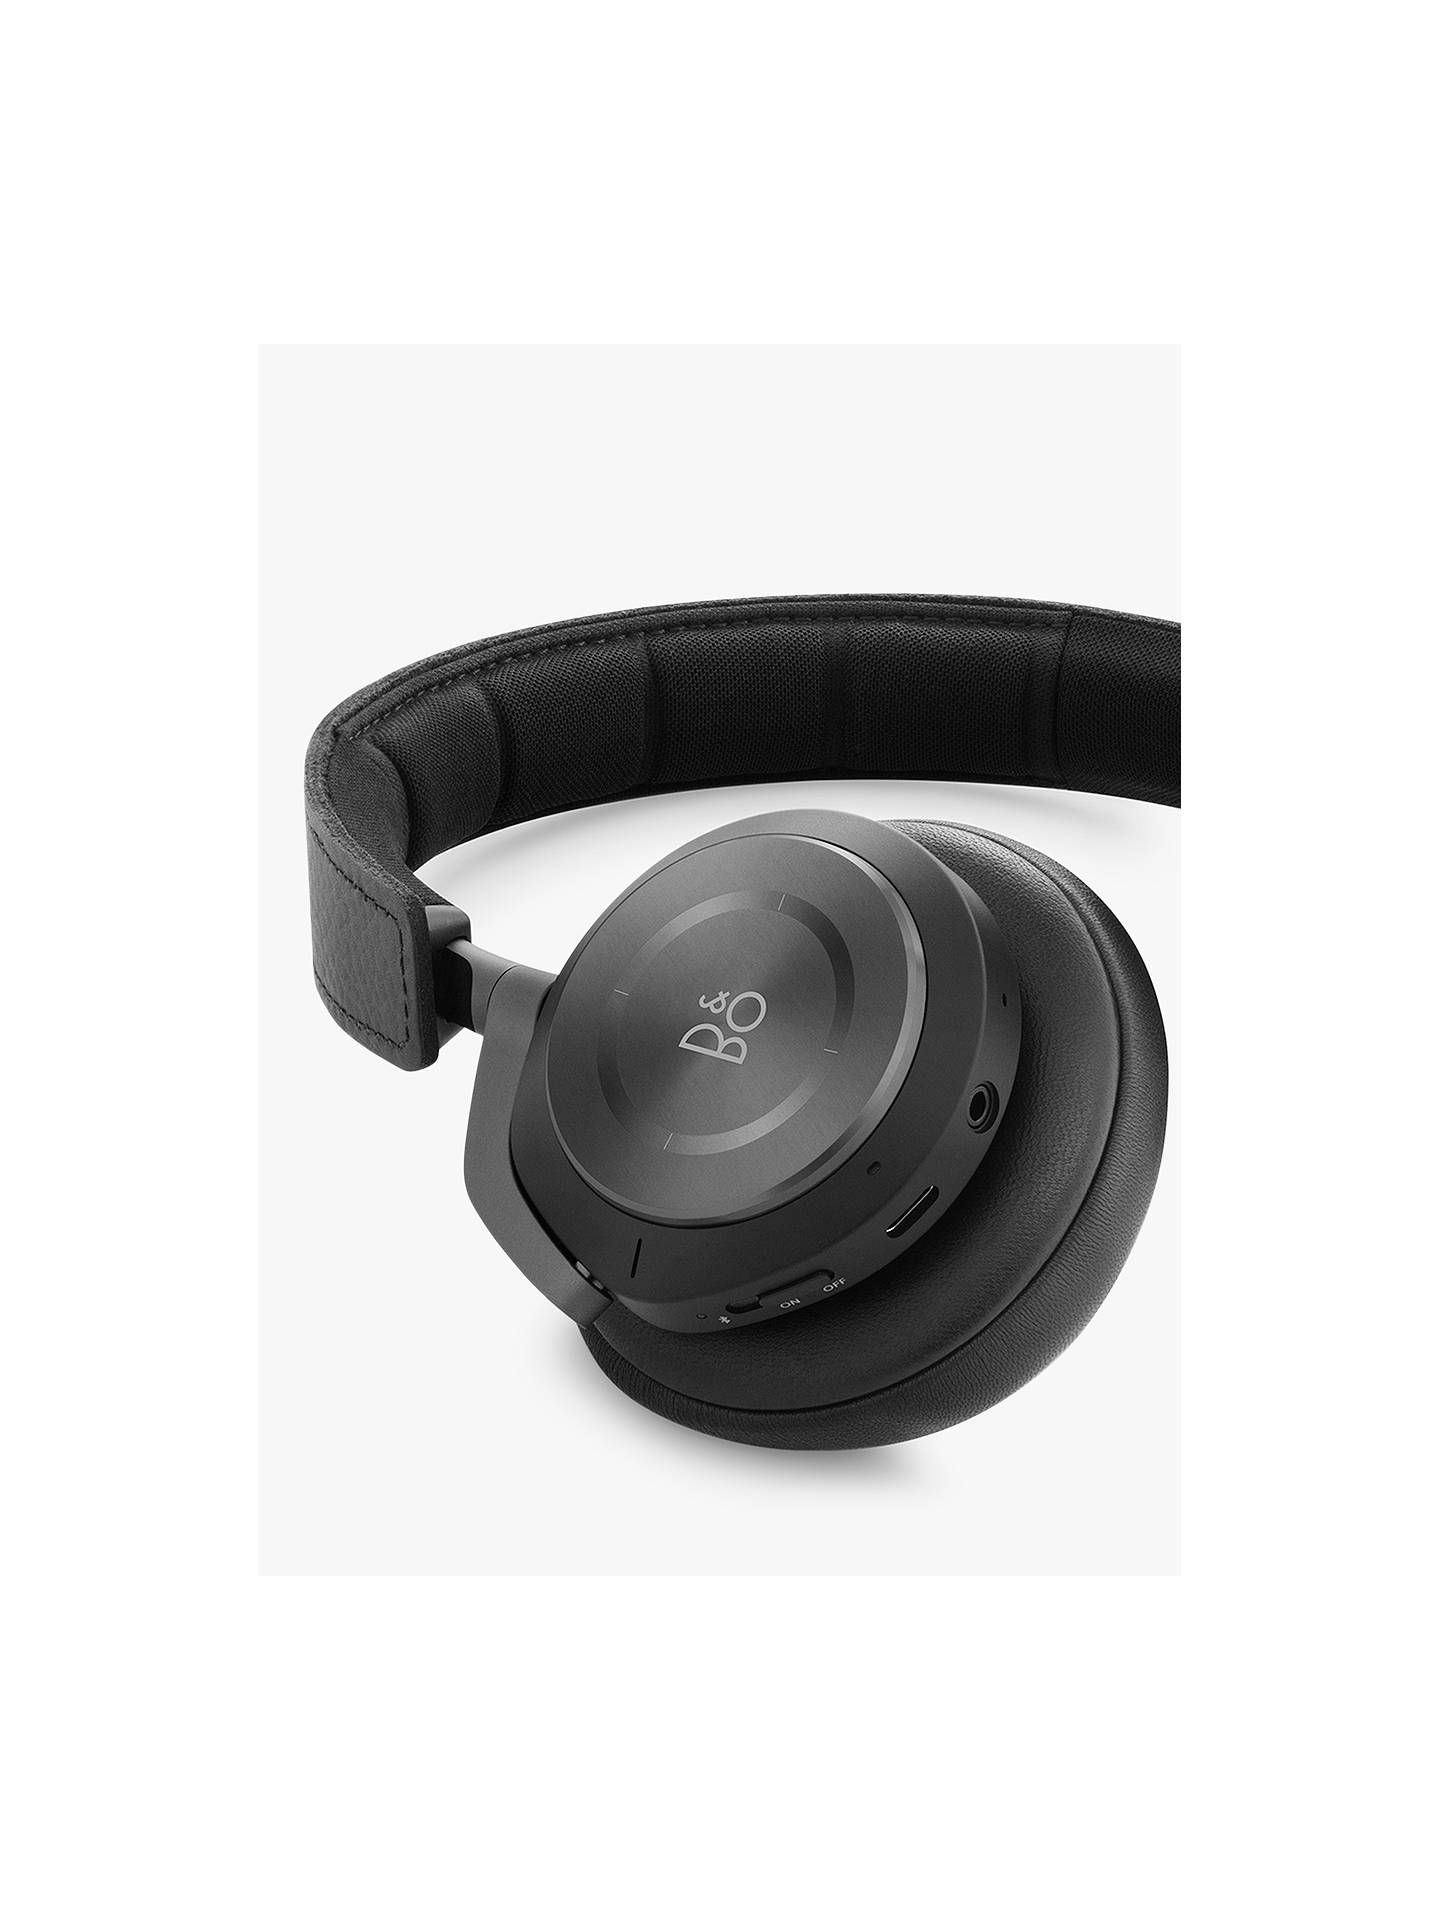 50ccb3e5710 ... Buy Bang & Olufsen Beoplay H9i Wireless Bluetooth Active Noise  Cancelling Over-Ear Headphones with ...